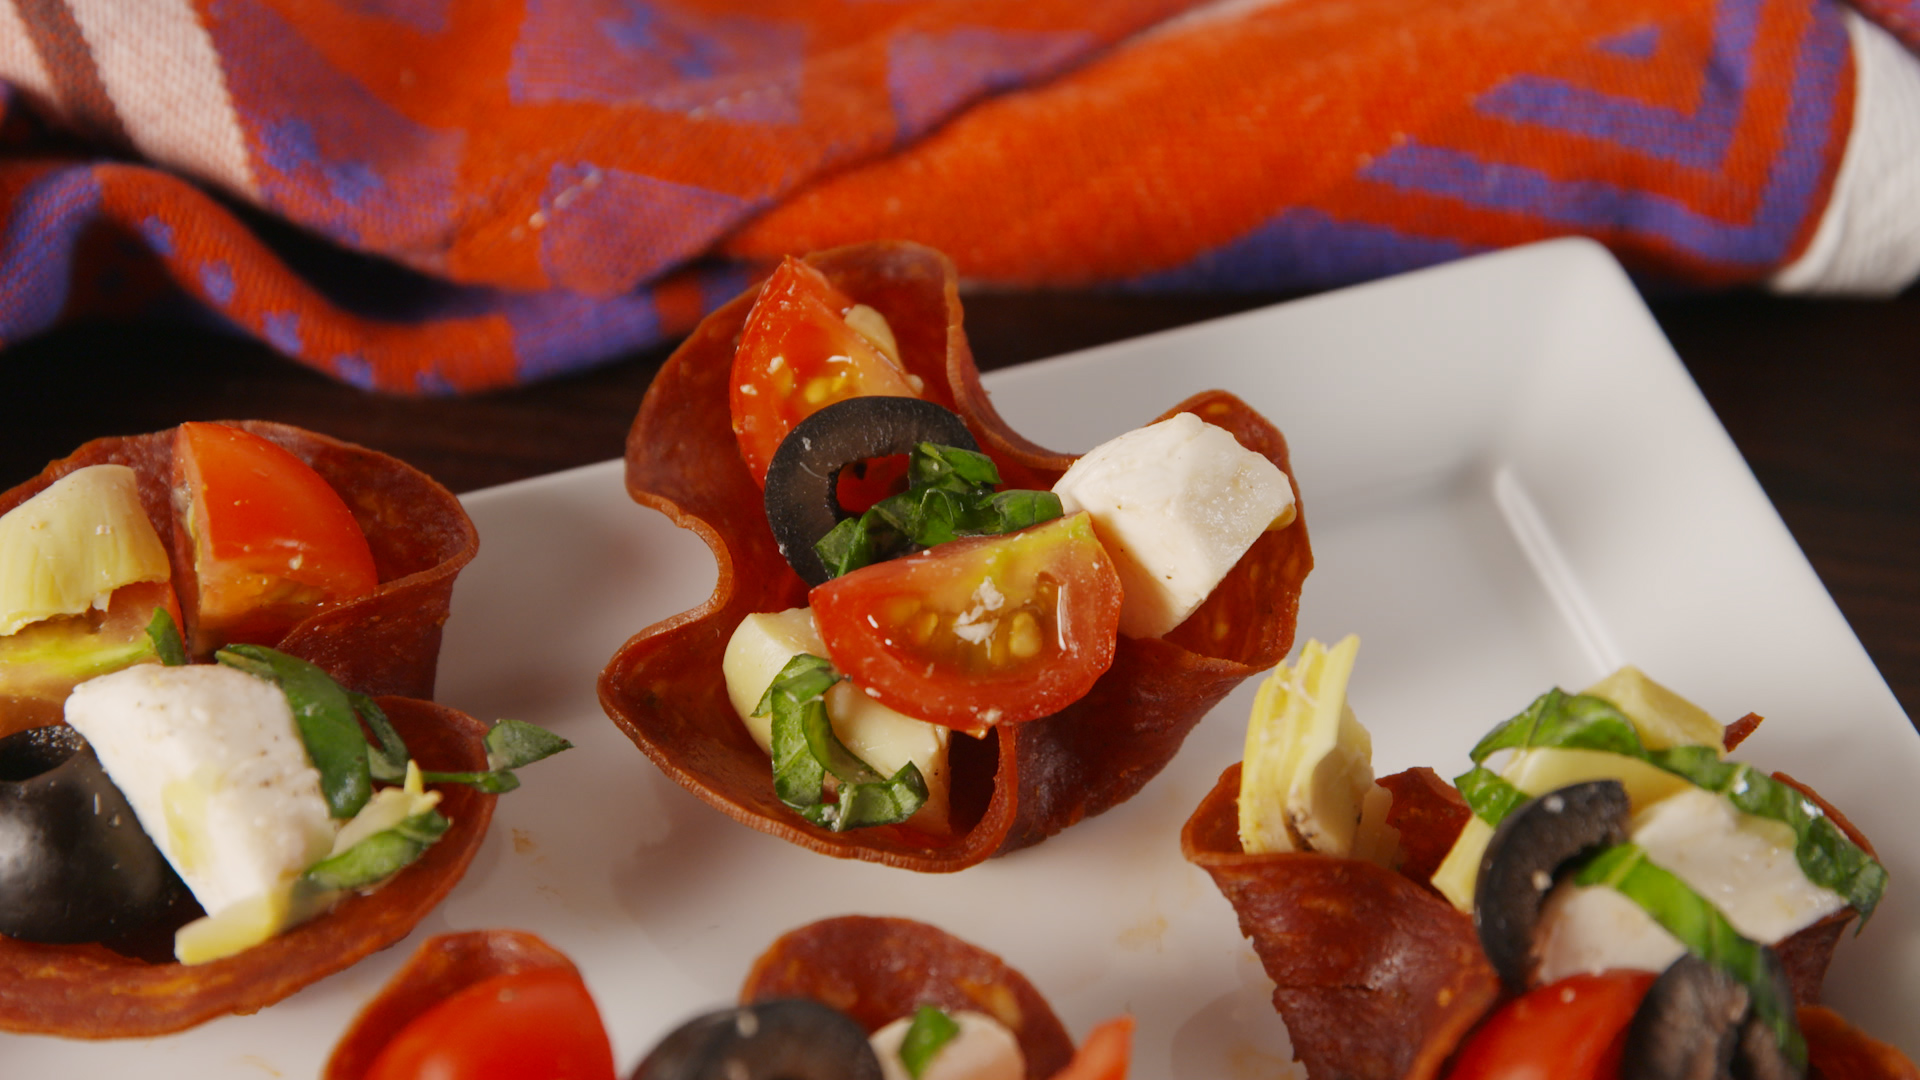 How To Make Low-Carb Antipasto Cups How To Make Low-Carb Antipasto Cups new images